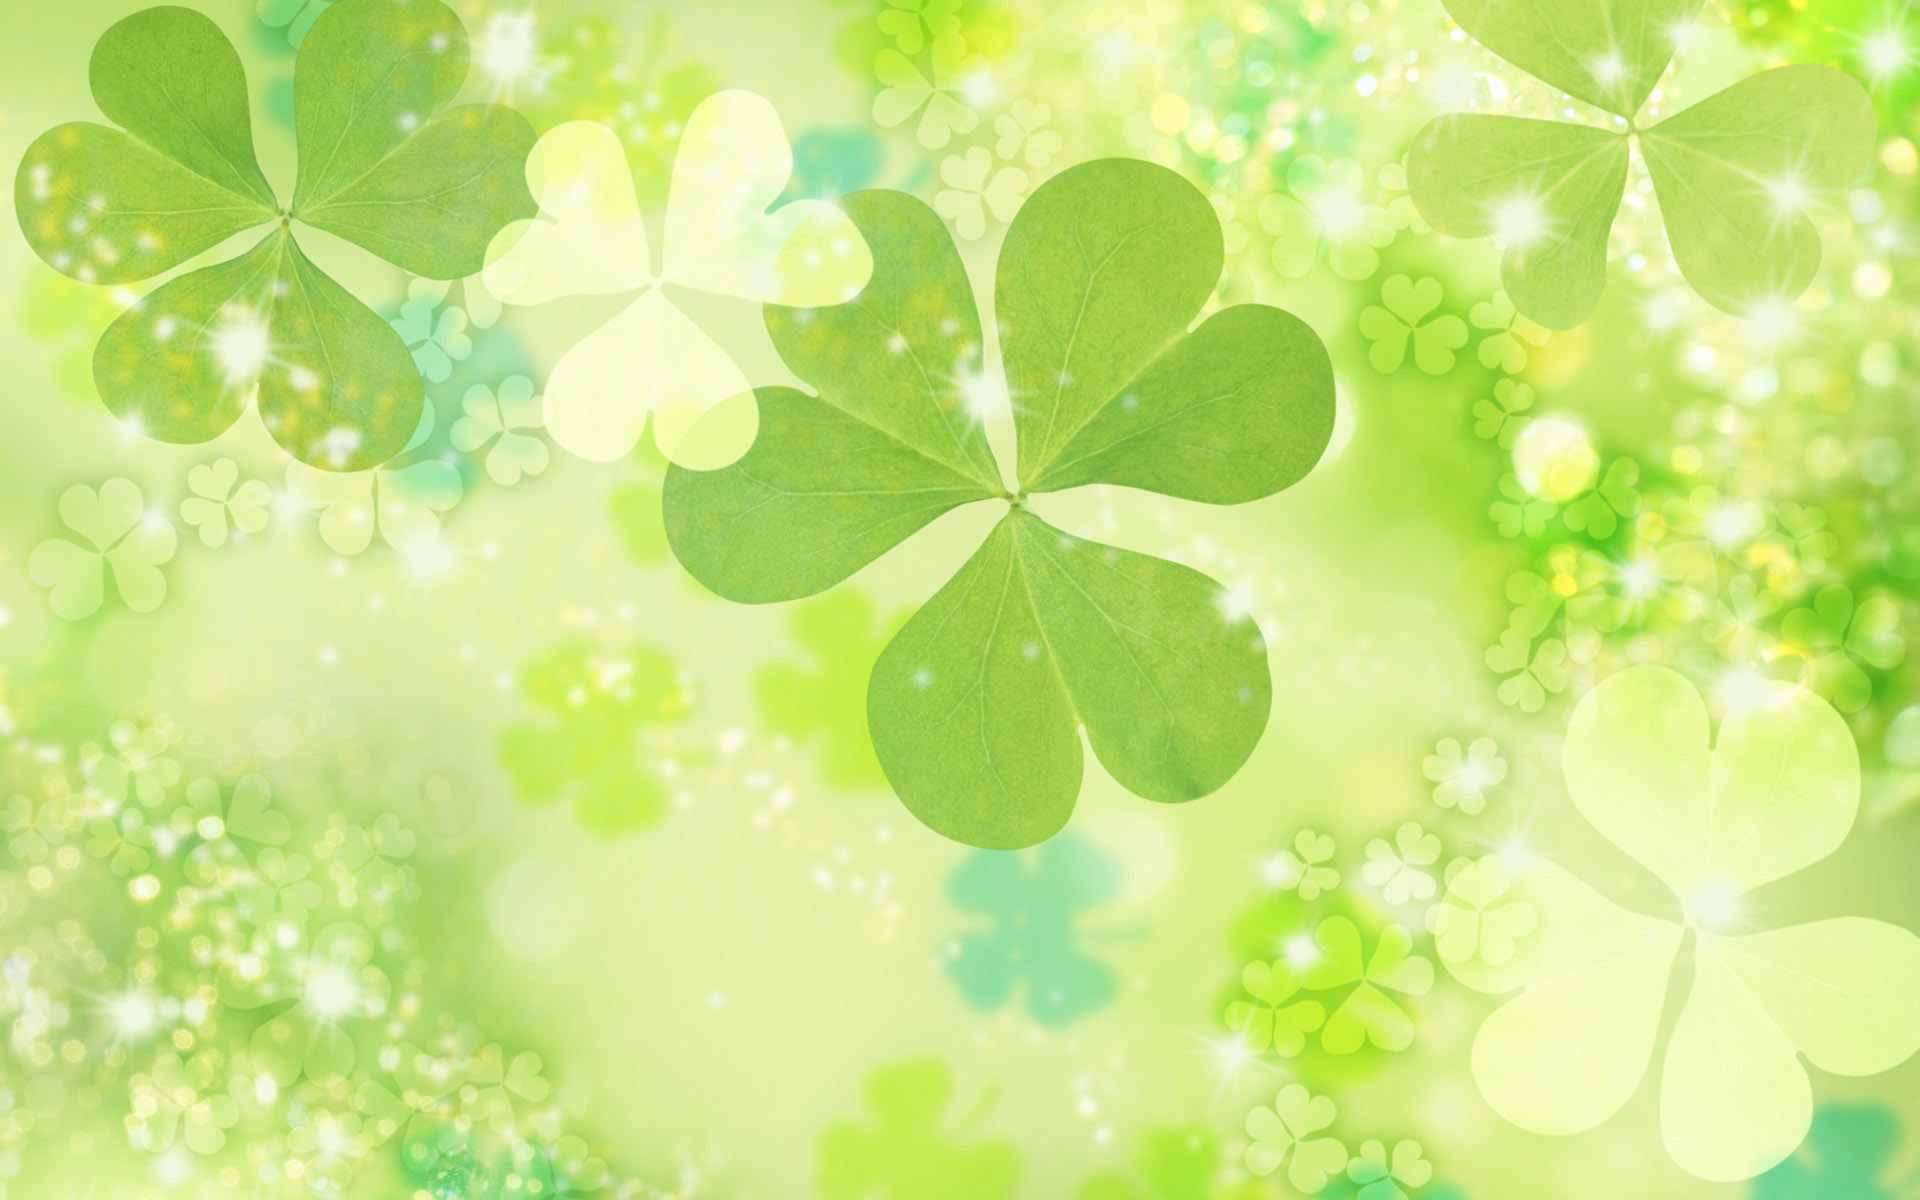 day wallpaper the free st patrick s day wallpaper can be downloaded in ...